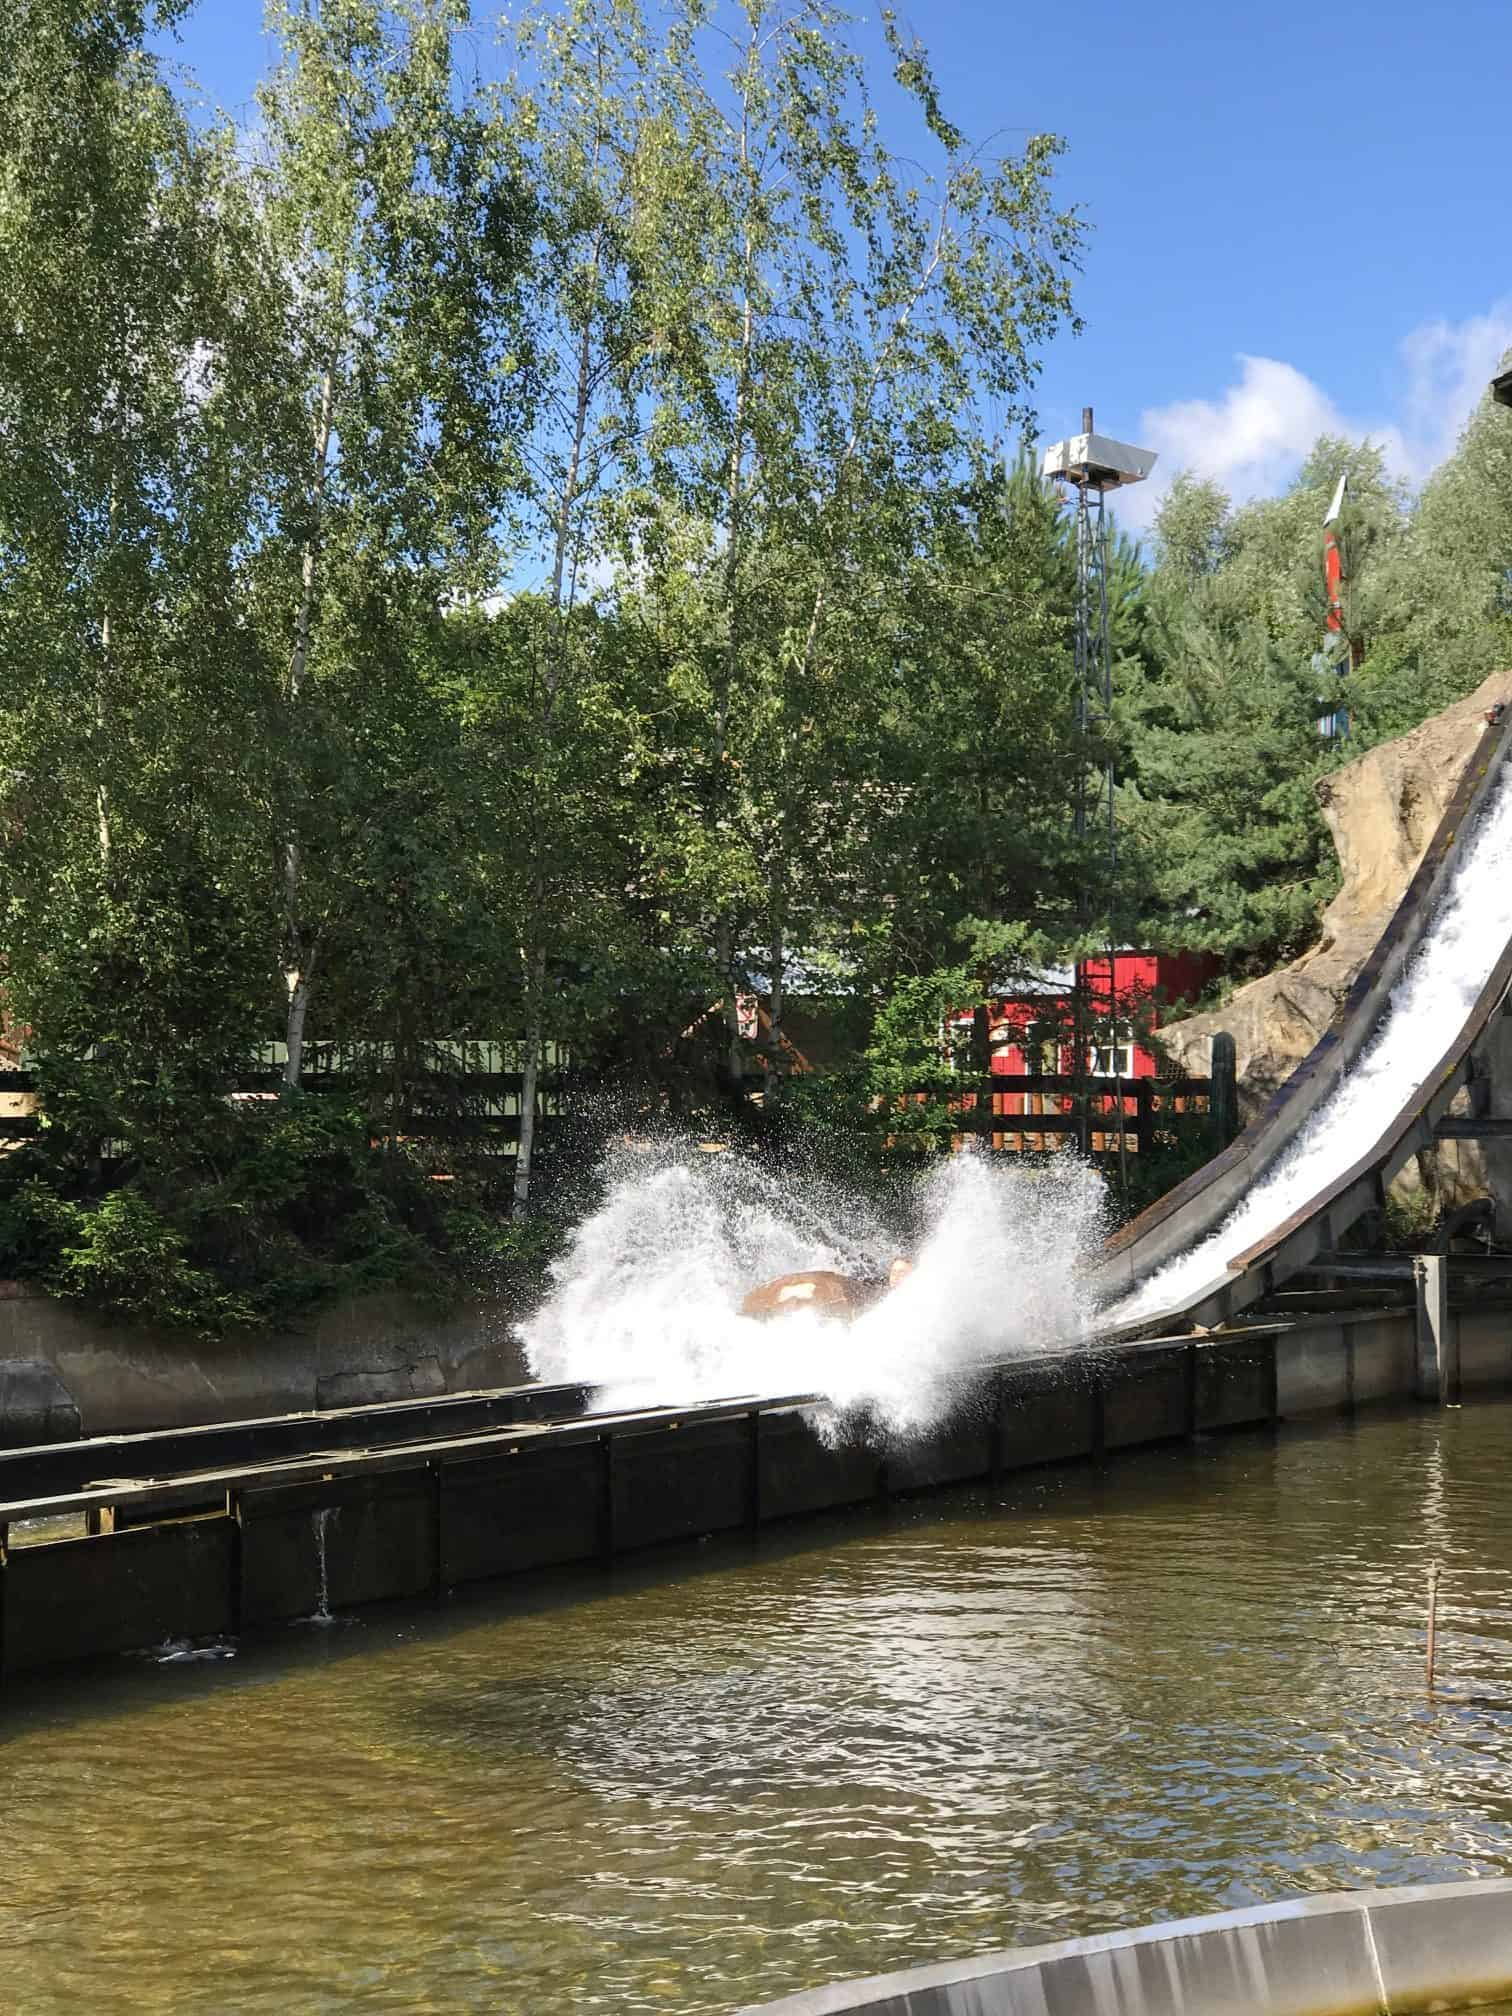 Water flume at Gulliver's Land Theme Park Milton Keynes